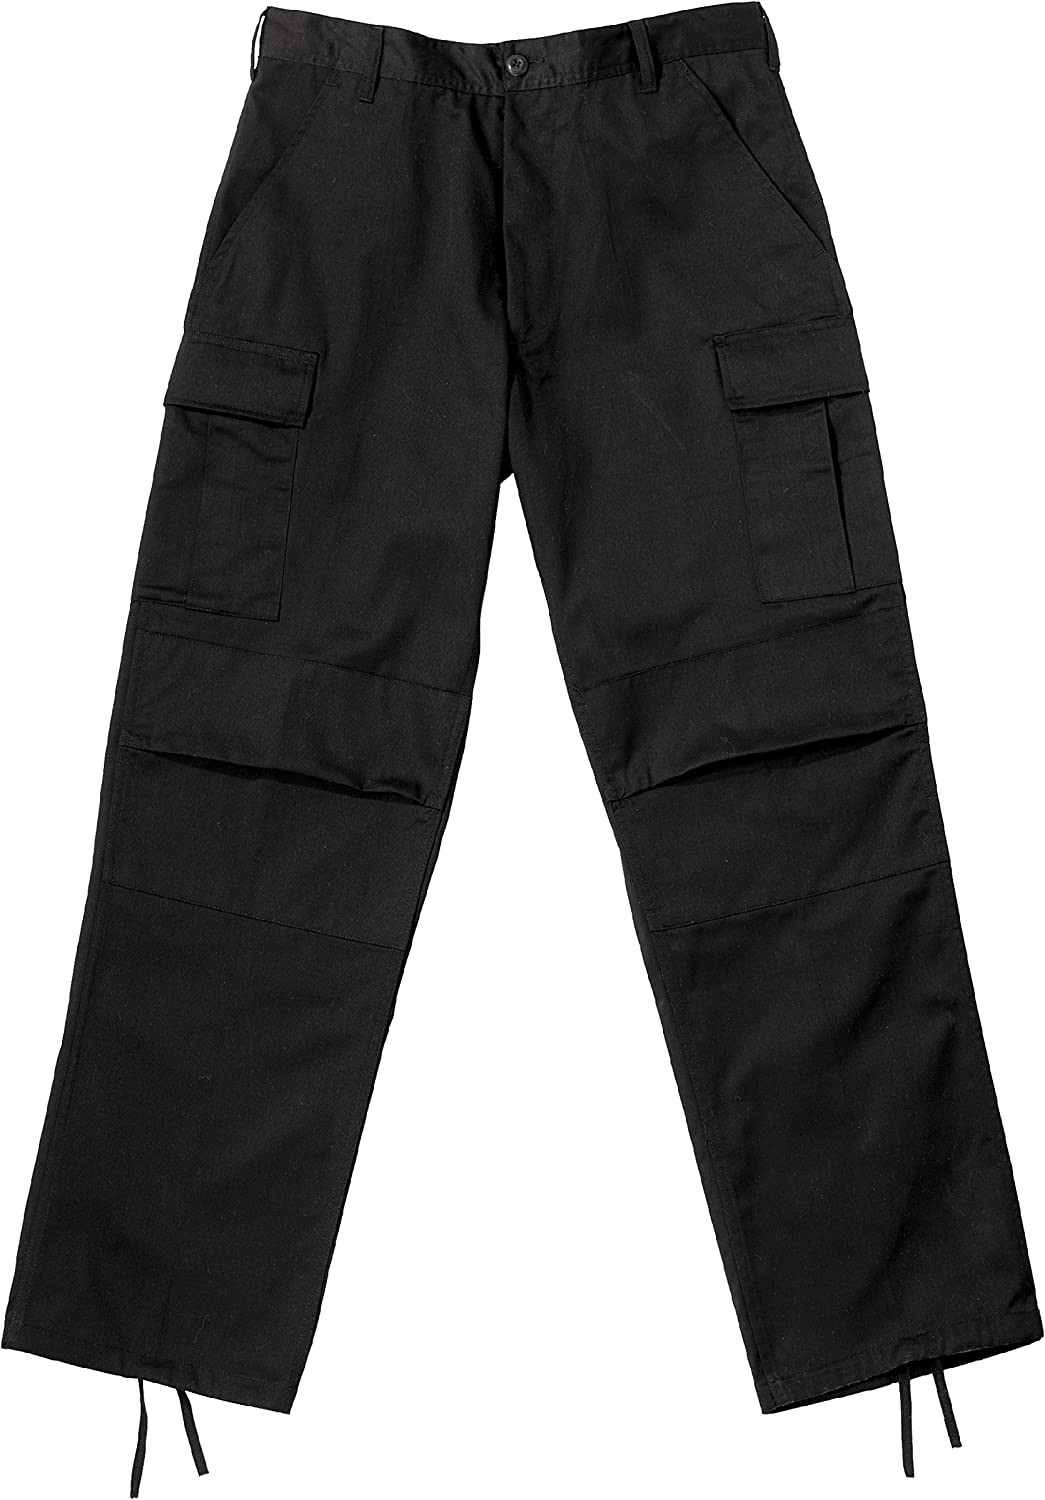 redhco Black Relaxed Fit Zipper Fly BDU Pants